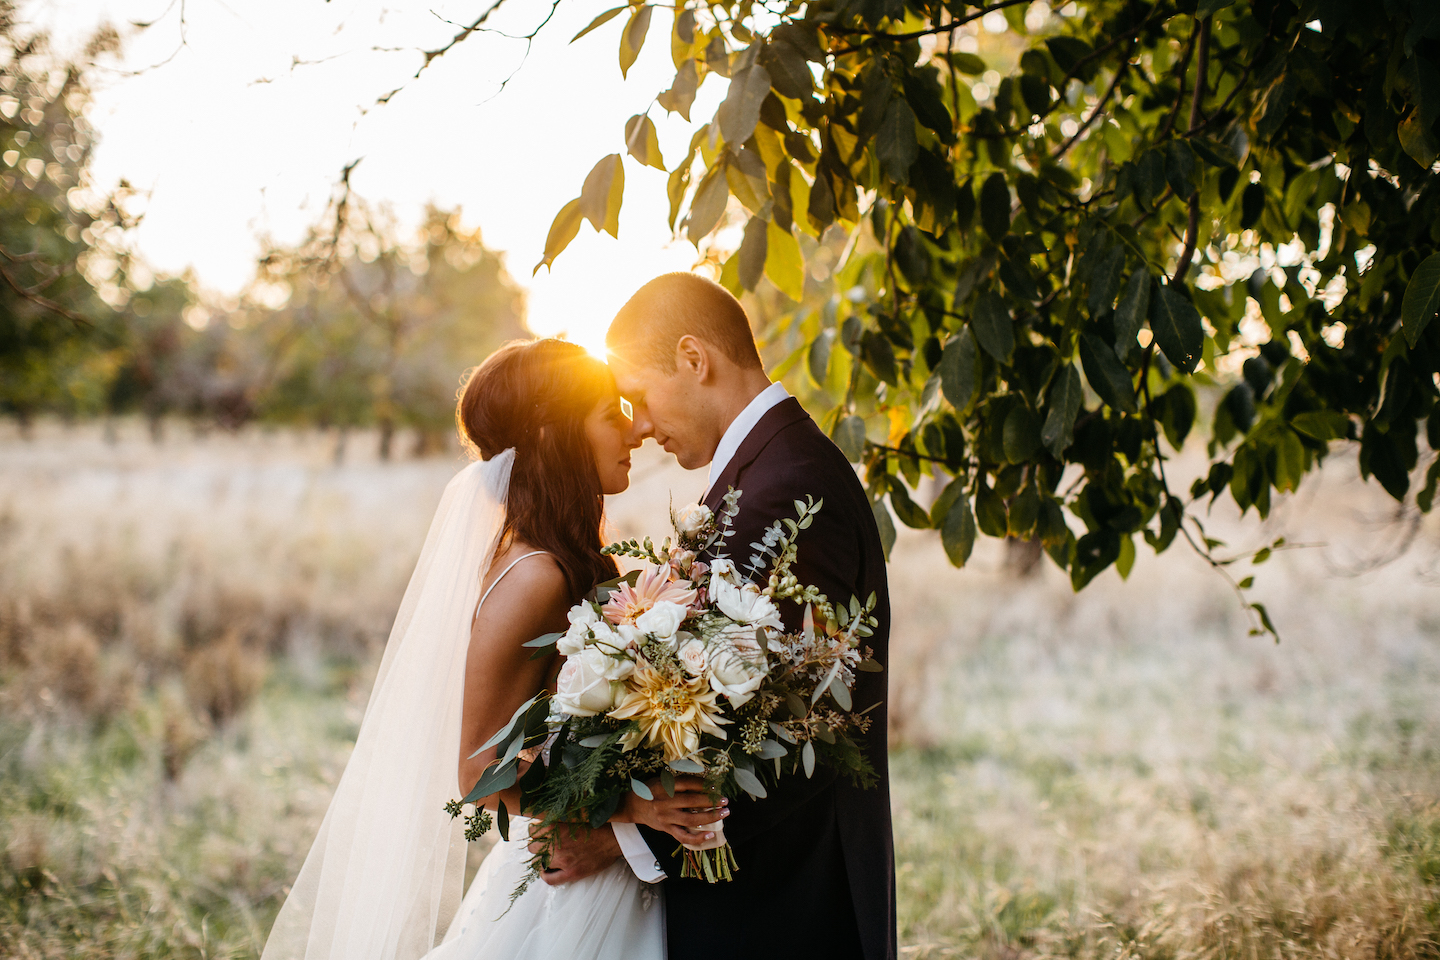 bride and groom in a field at sunset holding a bridal bouquet of dahlias, roses eucylyptus